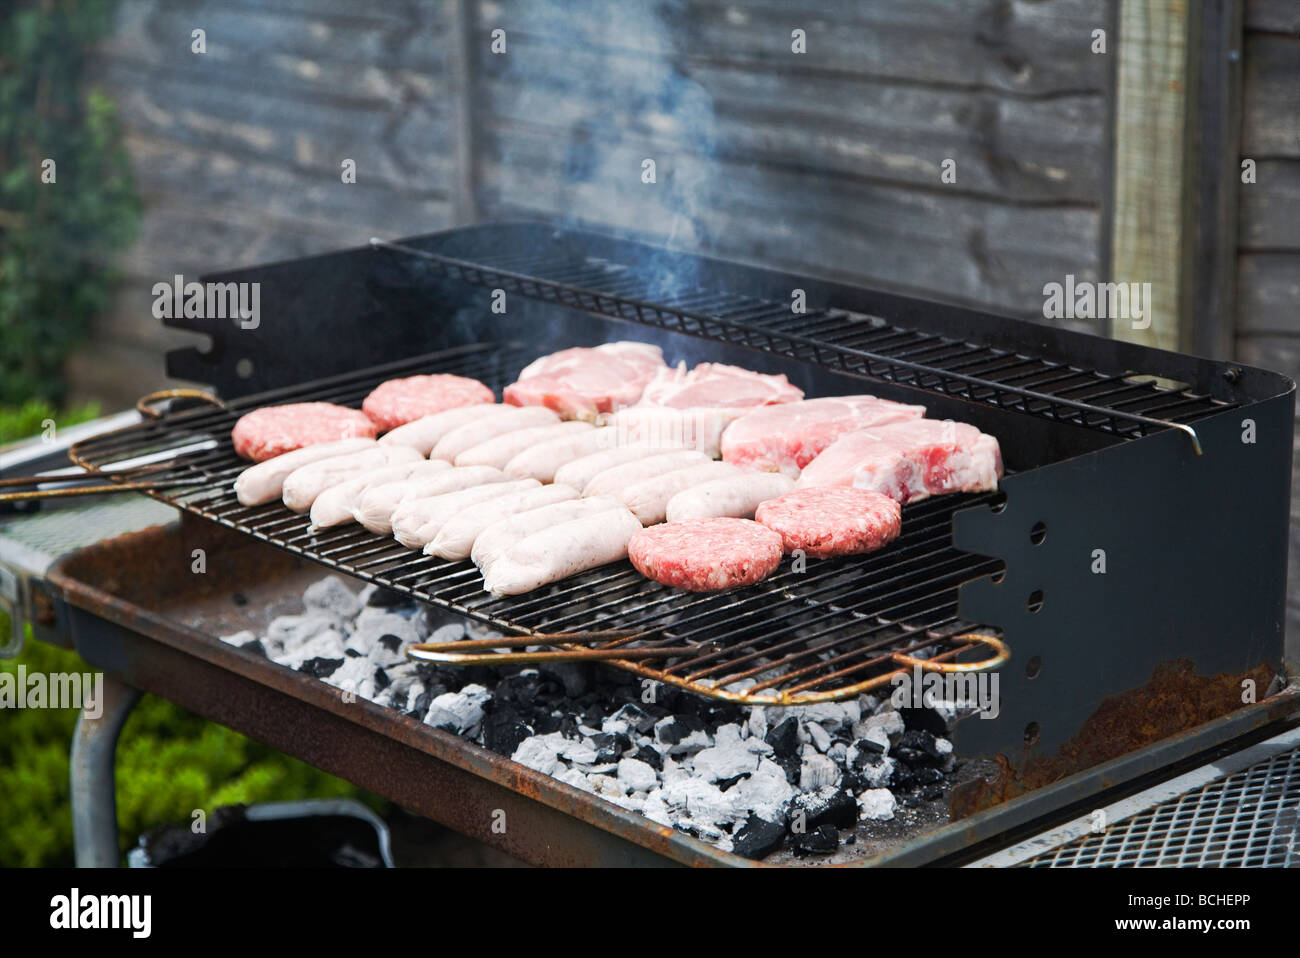 Fresh raw meat burgers sausages and pork chops cooking on a fresh raw meat burgers sausages and pork chops cooking on a barbecue grill england uk ccuart Choice Image